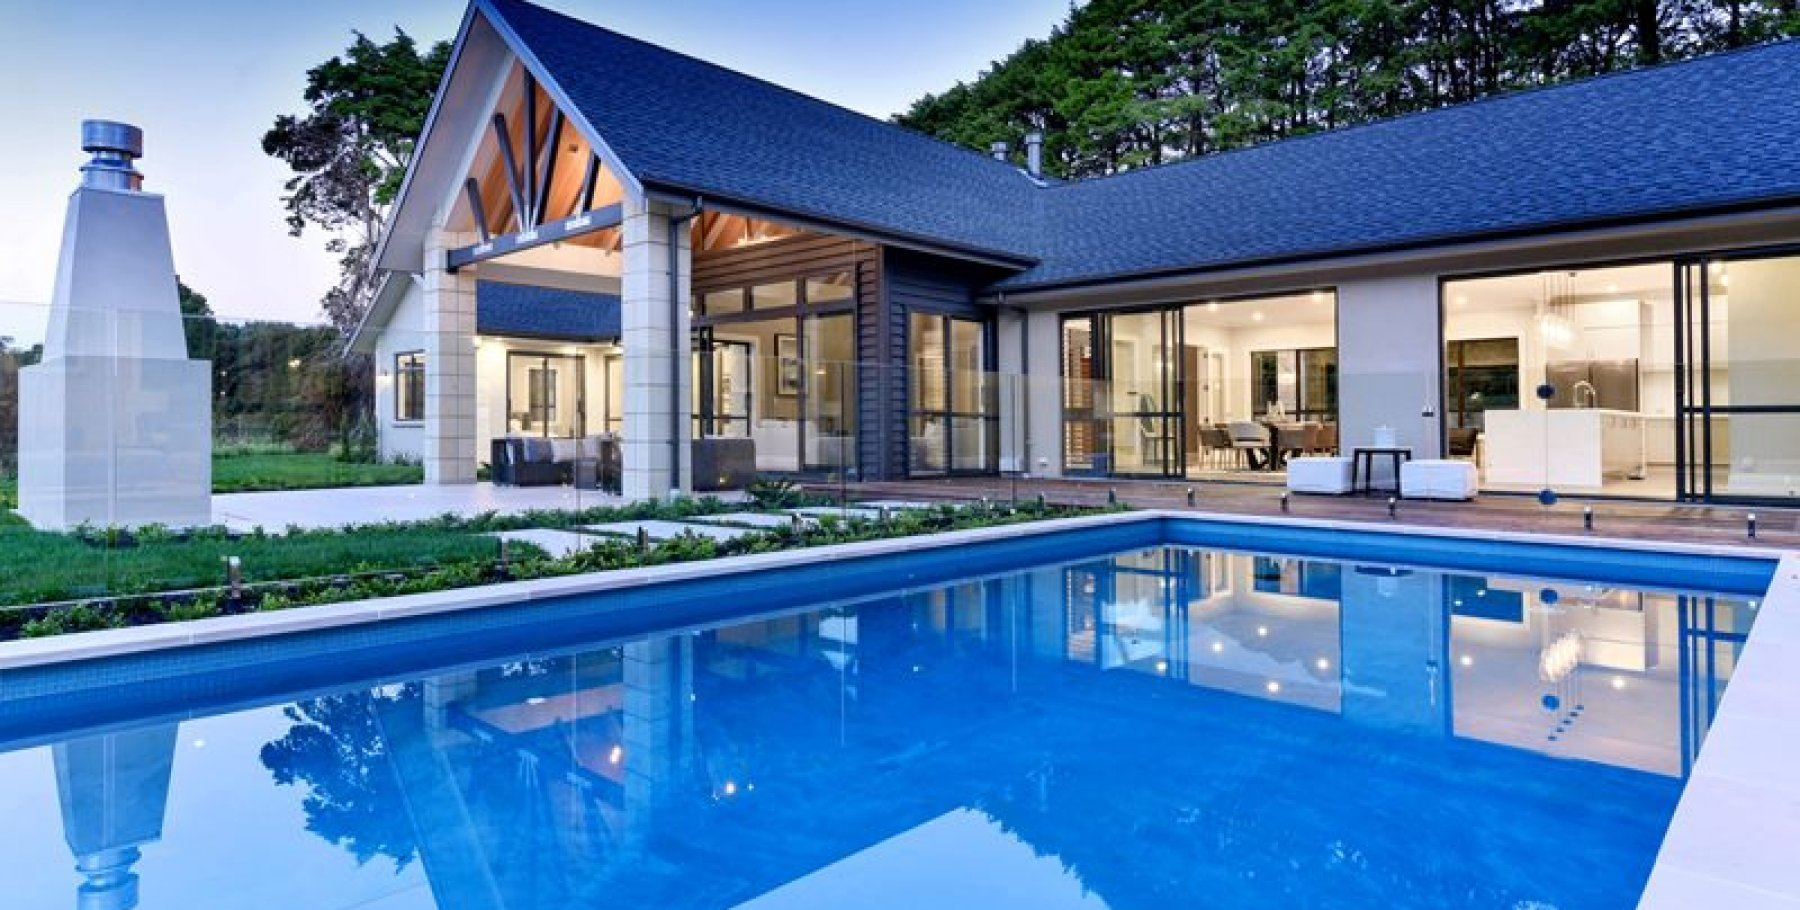 Auckland inground pools auckland archipro for Pool design auckland